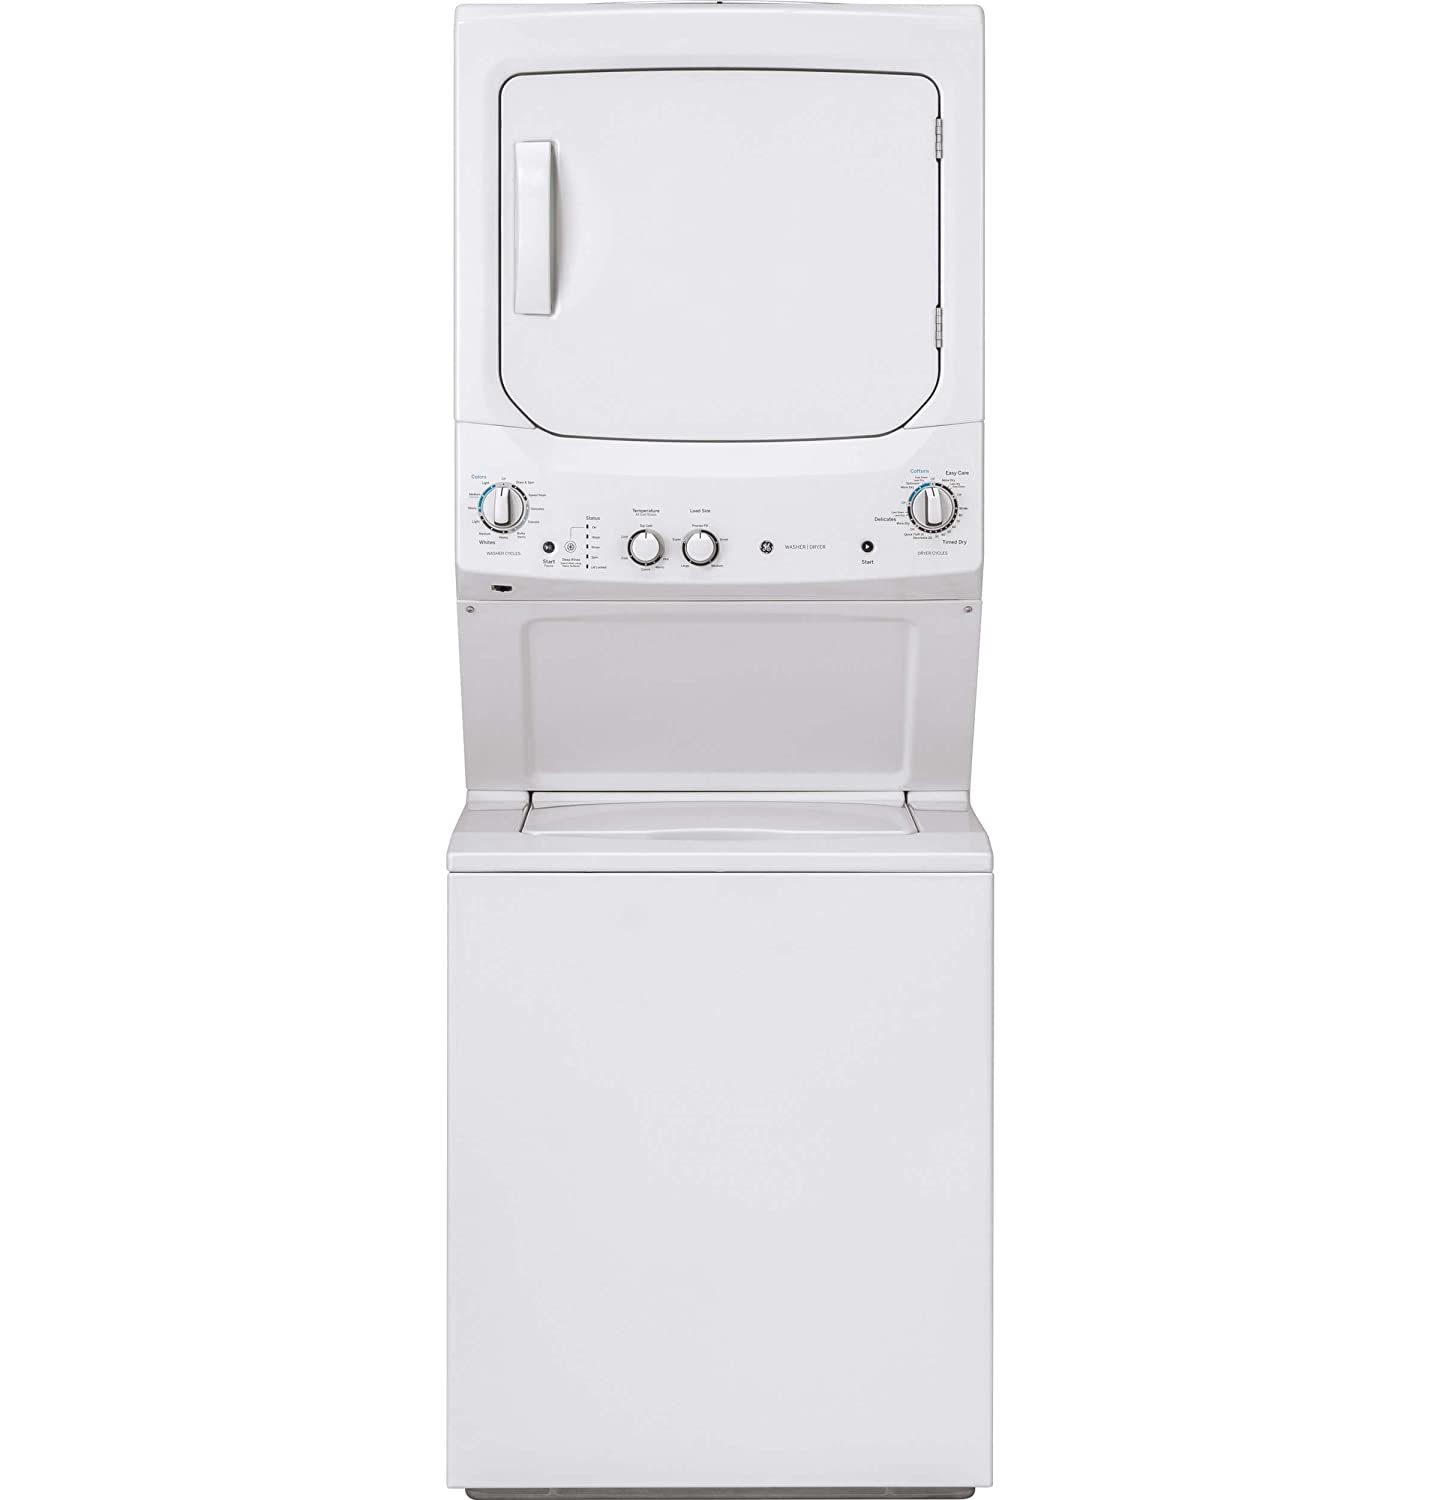 GE GUD27ESSMWW Unitized Spacemaker 3.8 Washer with Stainless Steel Basket and 5.9 Cu. Ft. Capacity Electric Dryer, White